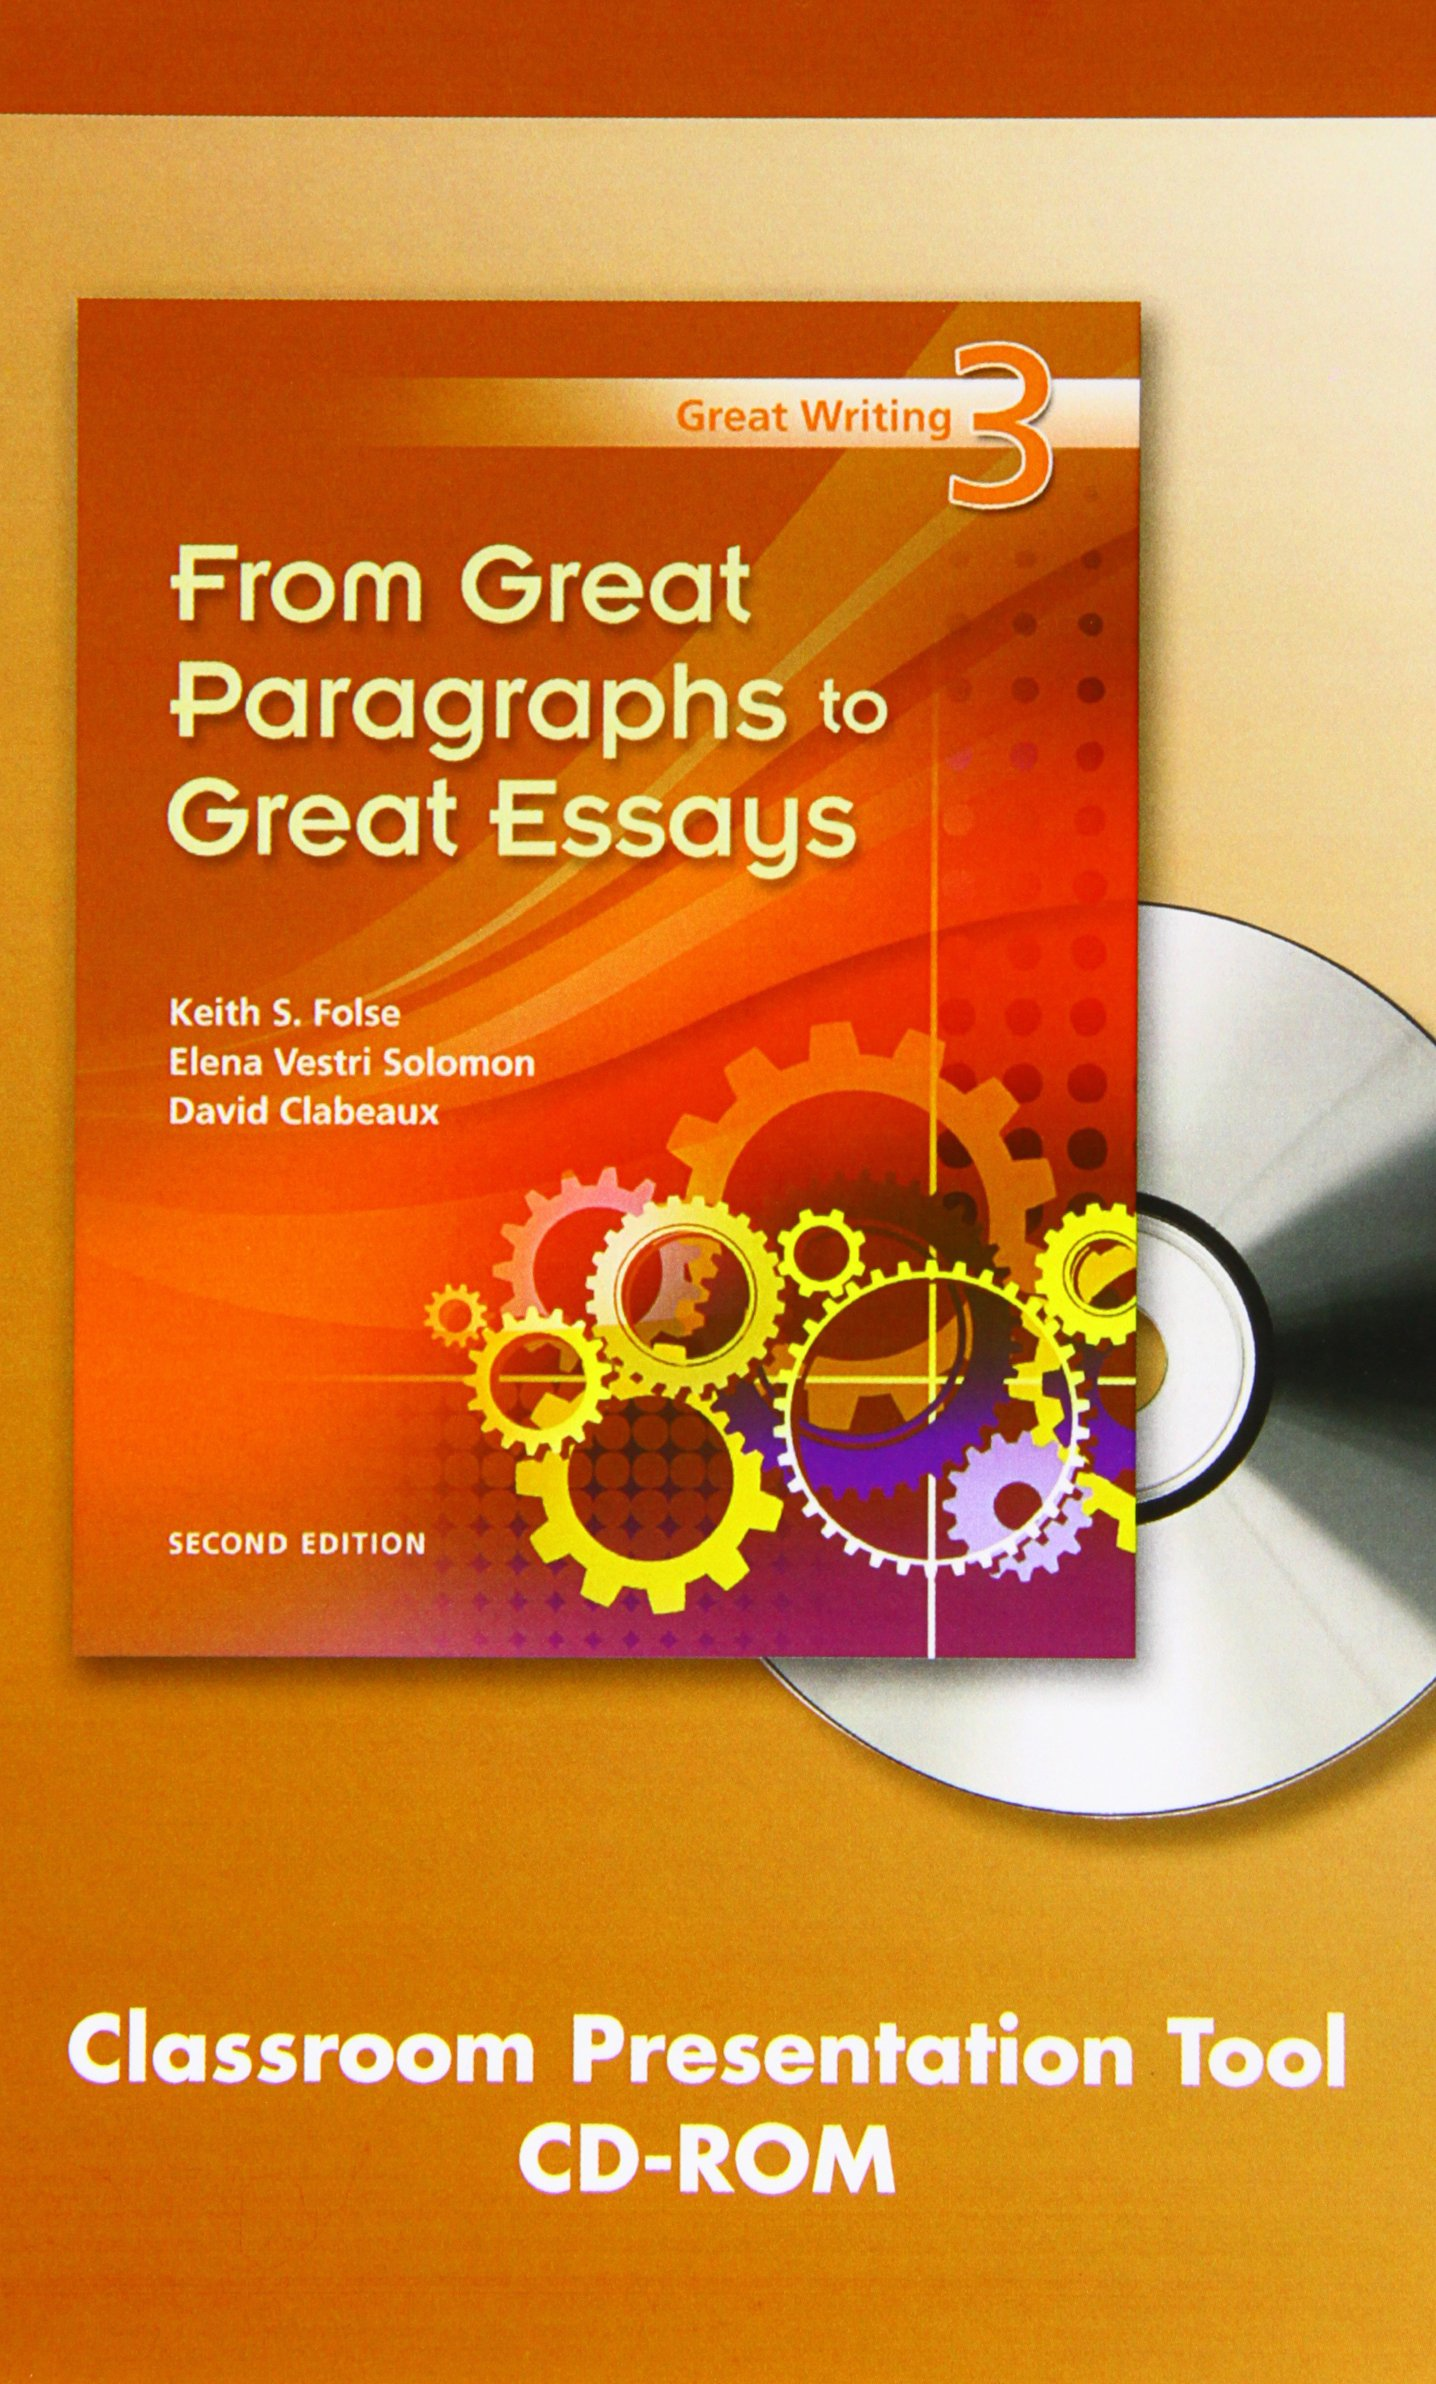 Great Writing  From Great Paragraphs To Great Essays Classroom  Great Writing  From Great Paragraphs To Great Essays Classroom  Presentation Tool Second Edition Keith S Folse Elena Vestri Solomon  David Clabeaux